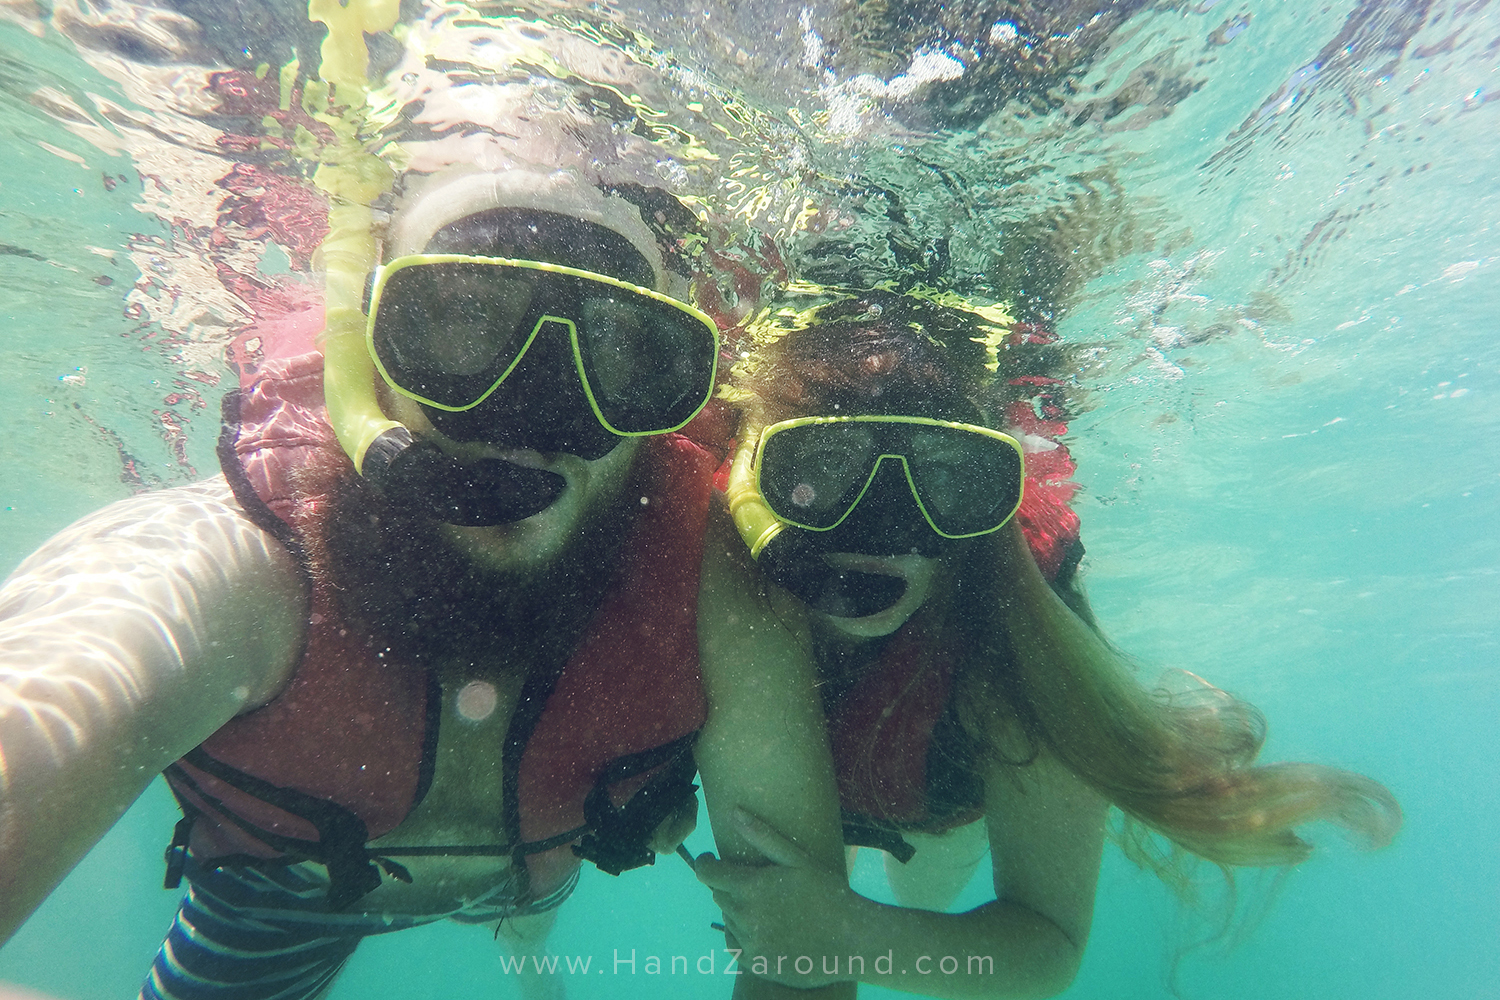 GoPro Hero 4 - Exploring the waters around Phi Phi Island in Thailand with our GoPro in hand.